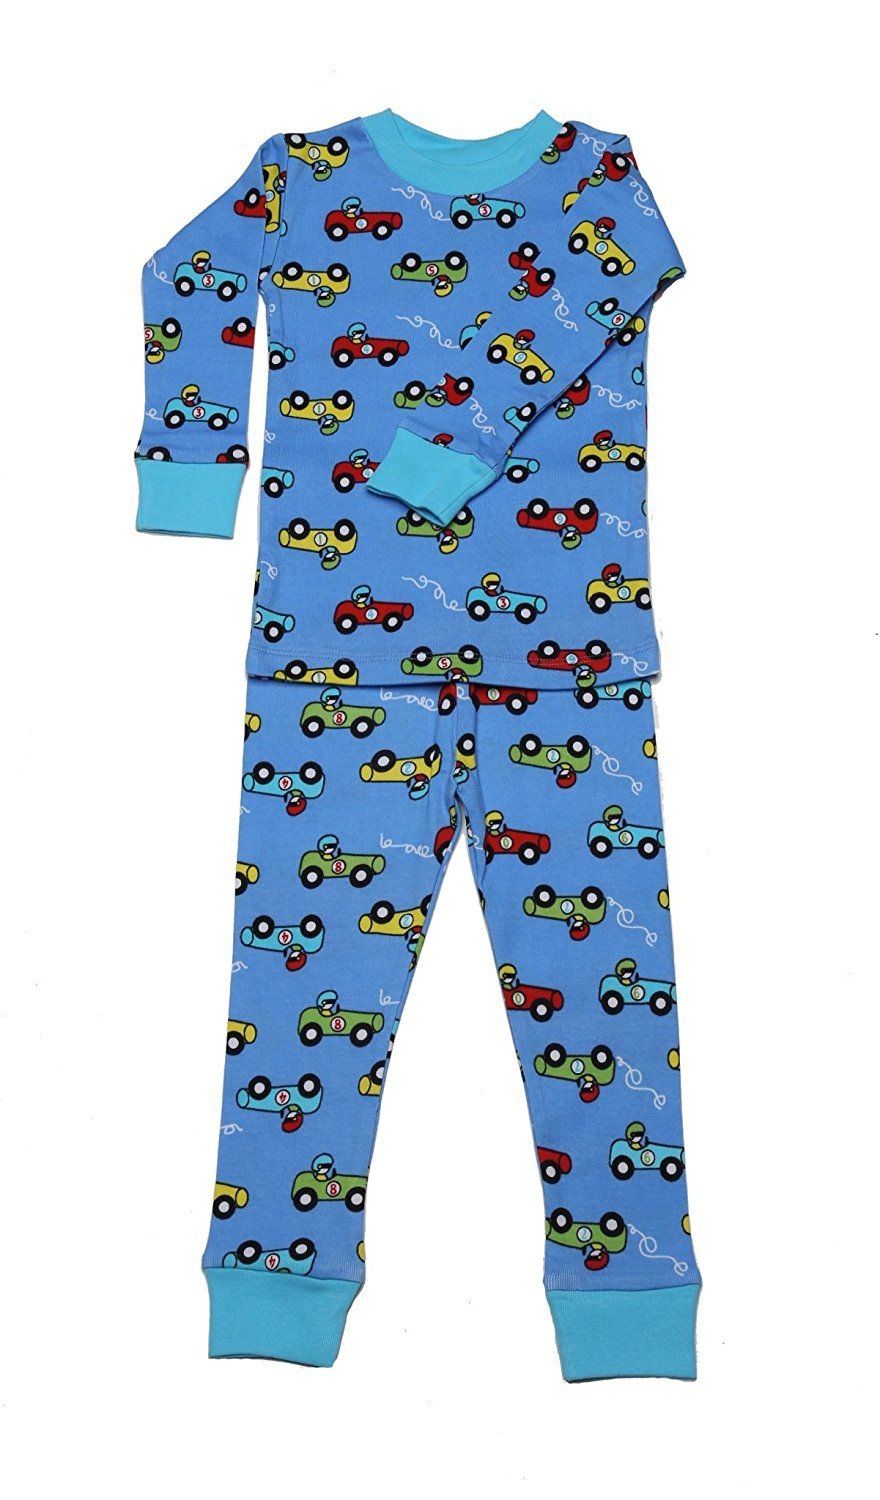 boys organic cotton racing cars pajamas by new jammies  bruce  - boys organic cotton racing cars pajamas by new jammies